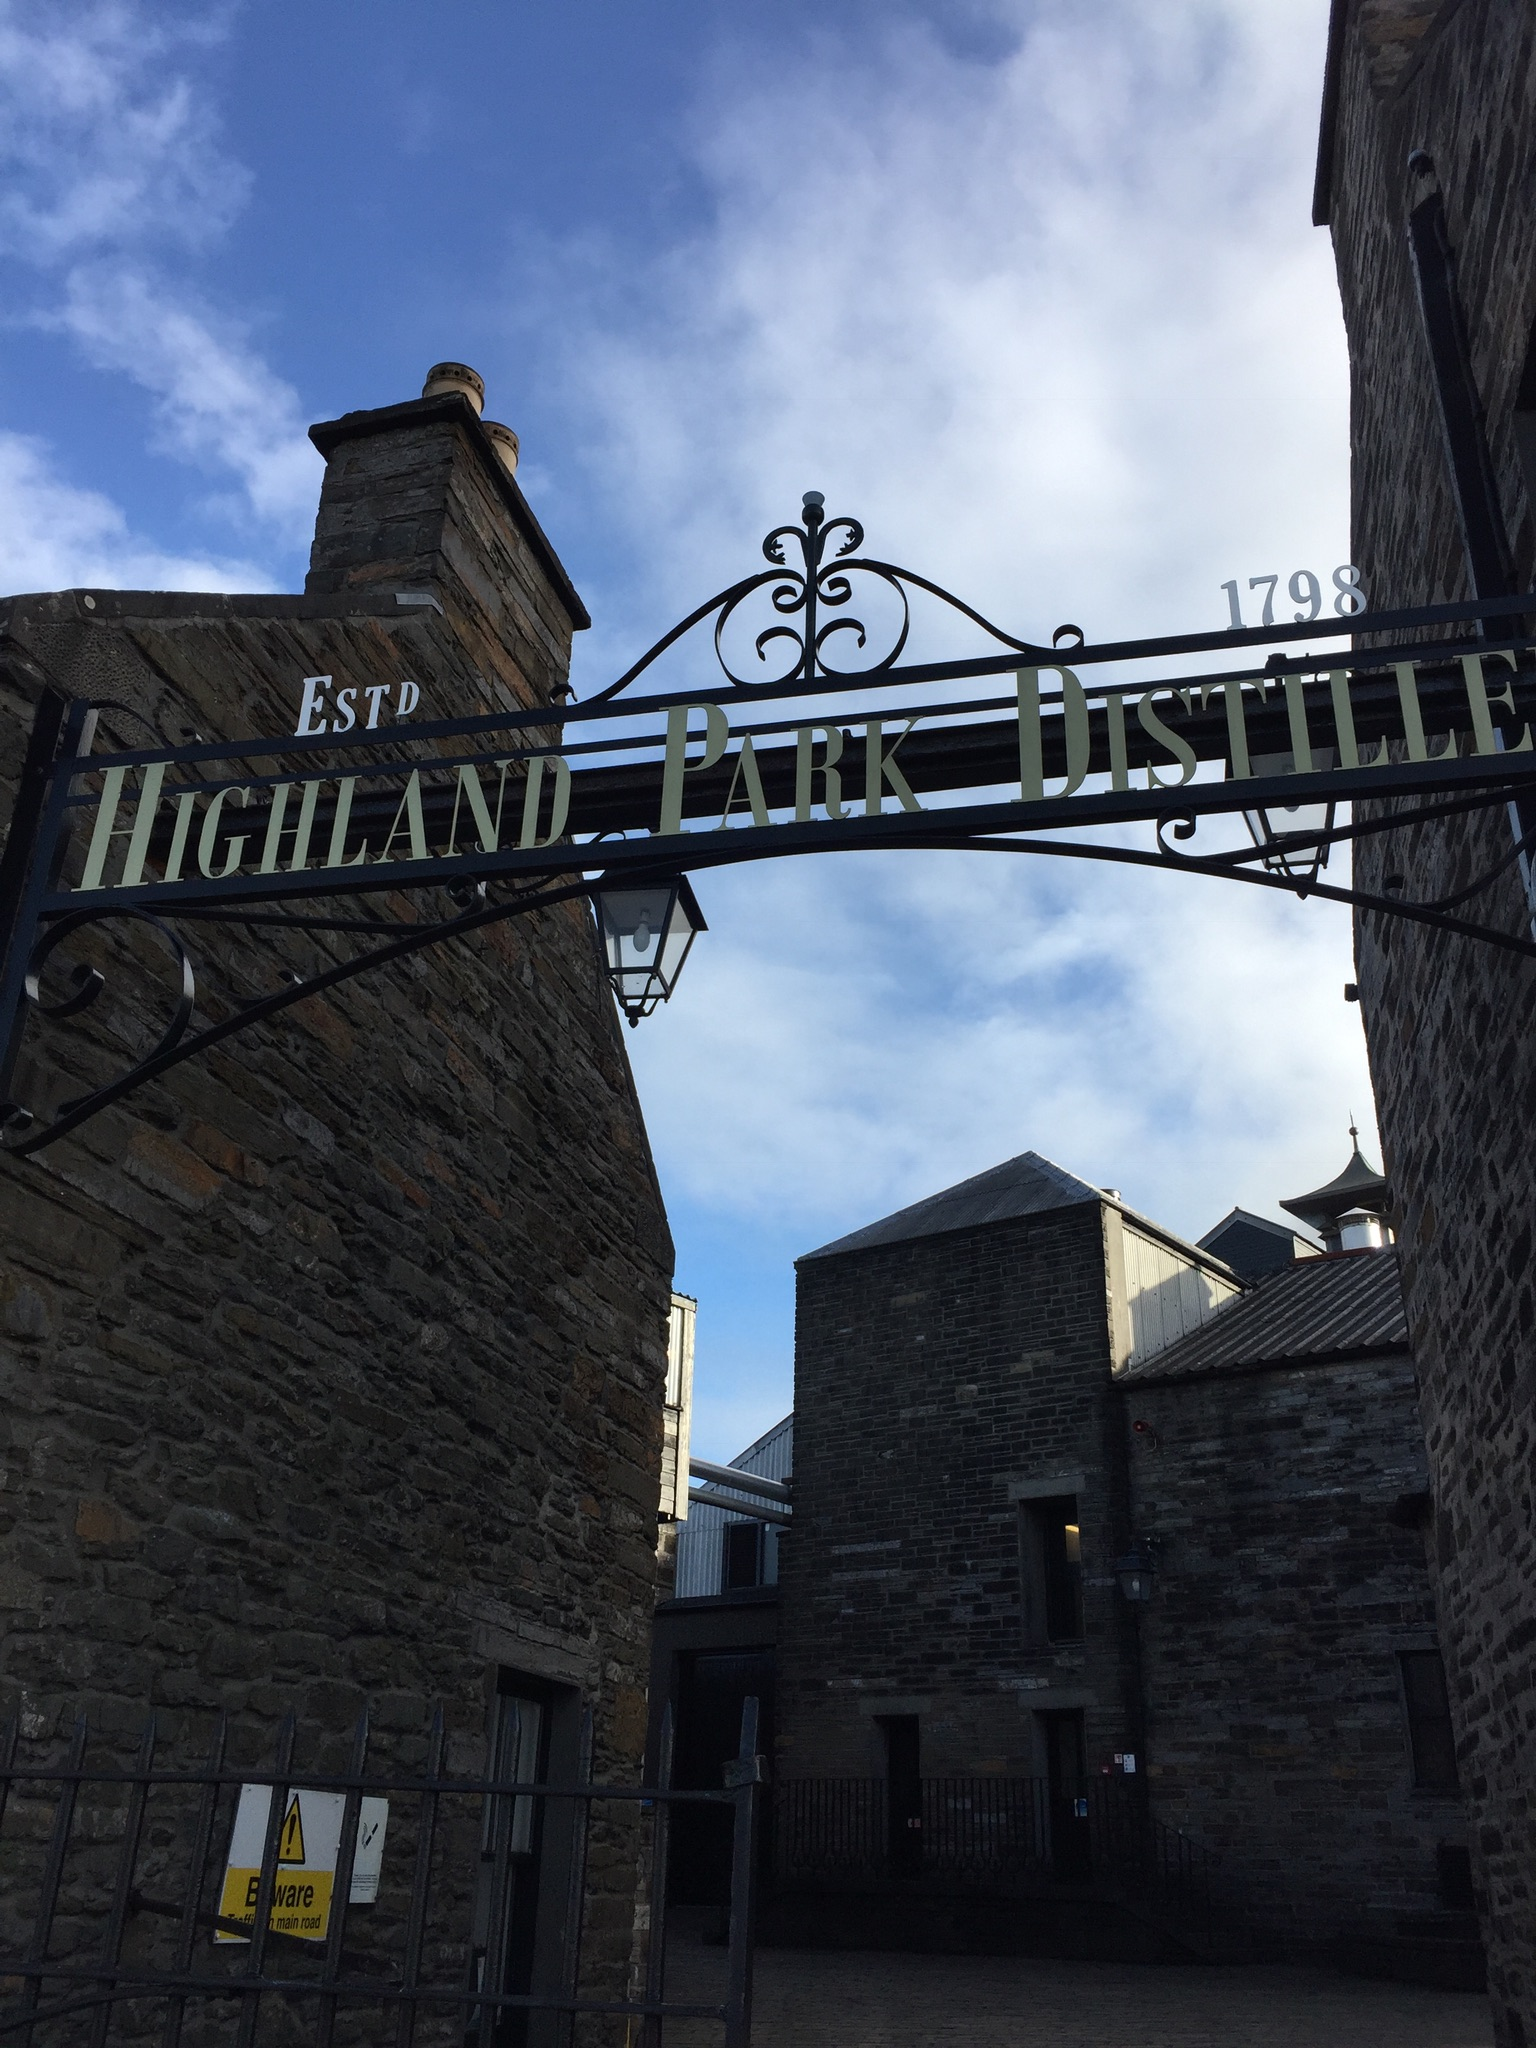 The austere yet landmark entrance to the Distillery - warmed by the blue sky!